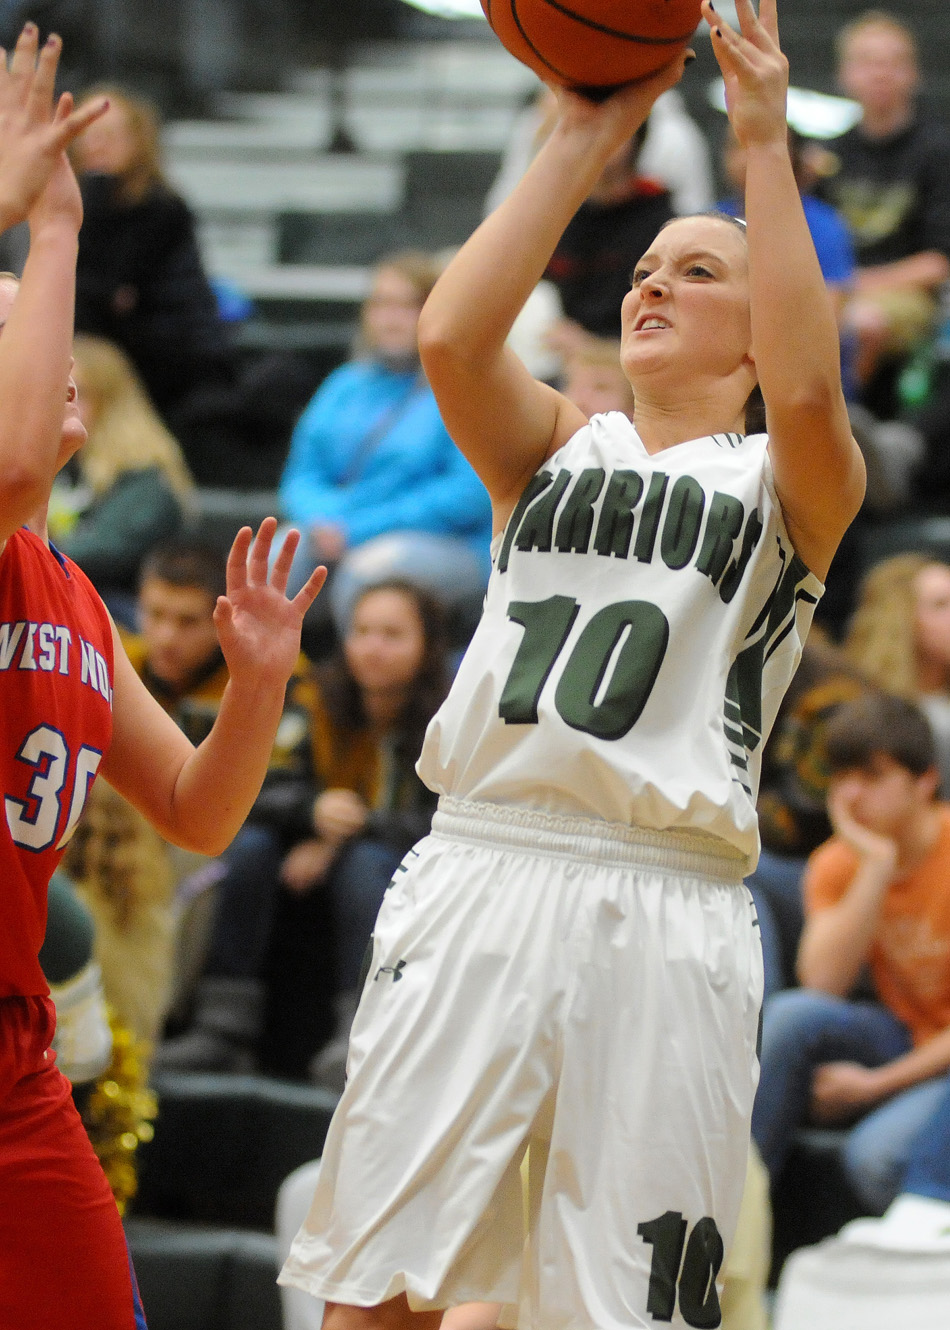 Wawasee's Elizabeth Jackson takes a shot over the defense of West Noble's Becca Schermerhorn.